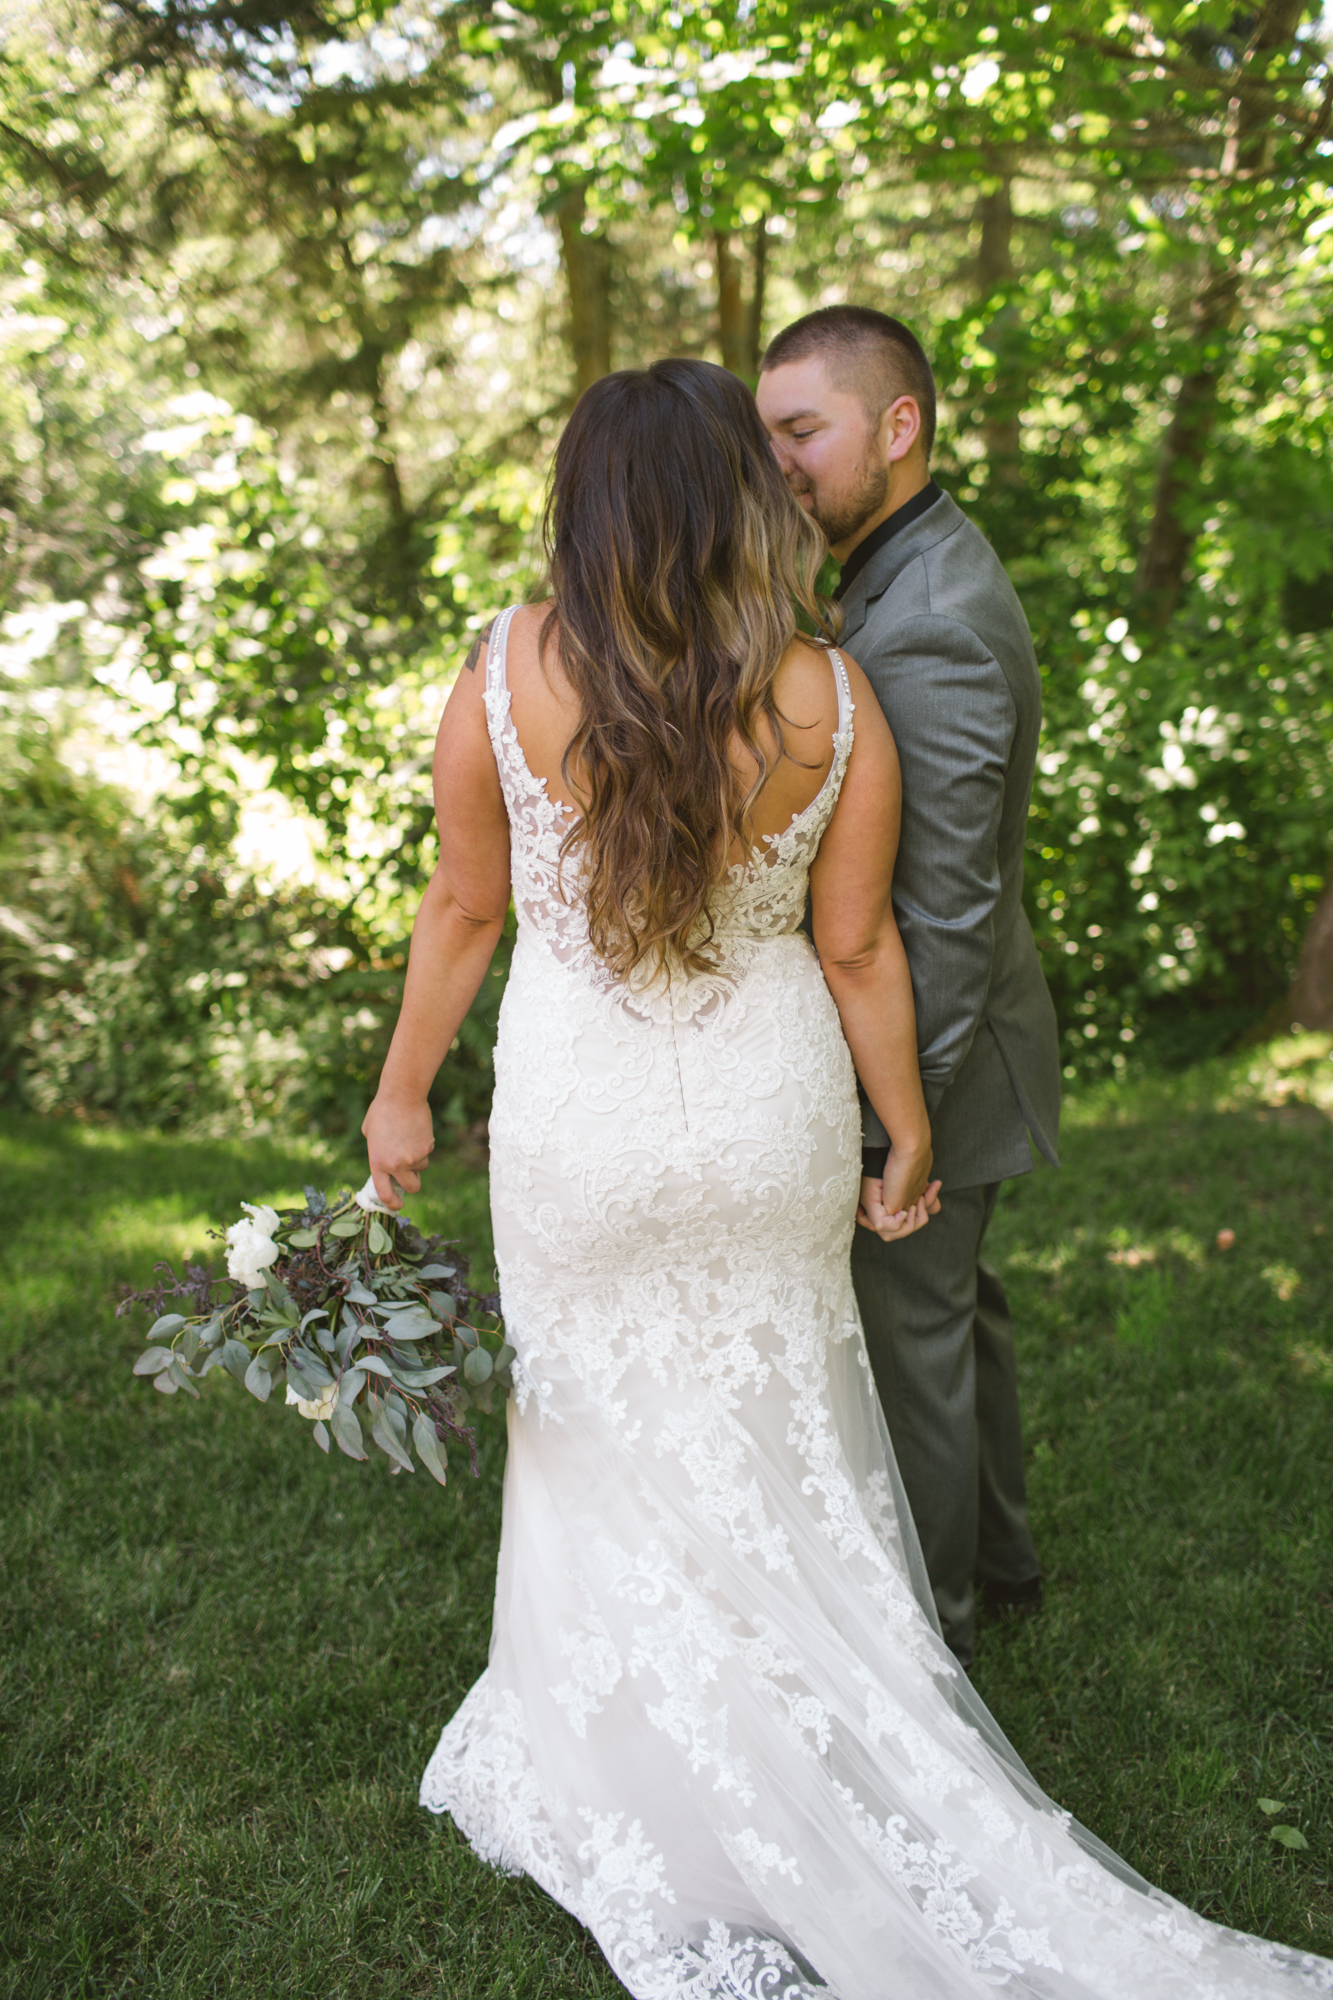 Brianna & Tyler's Wedding-39.jpg